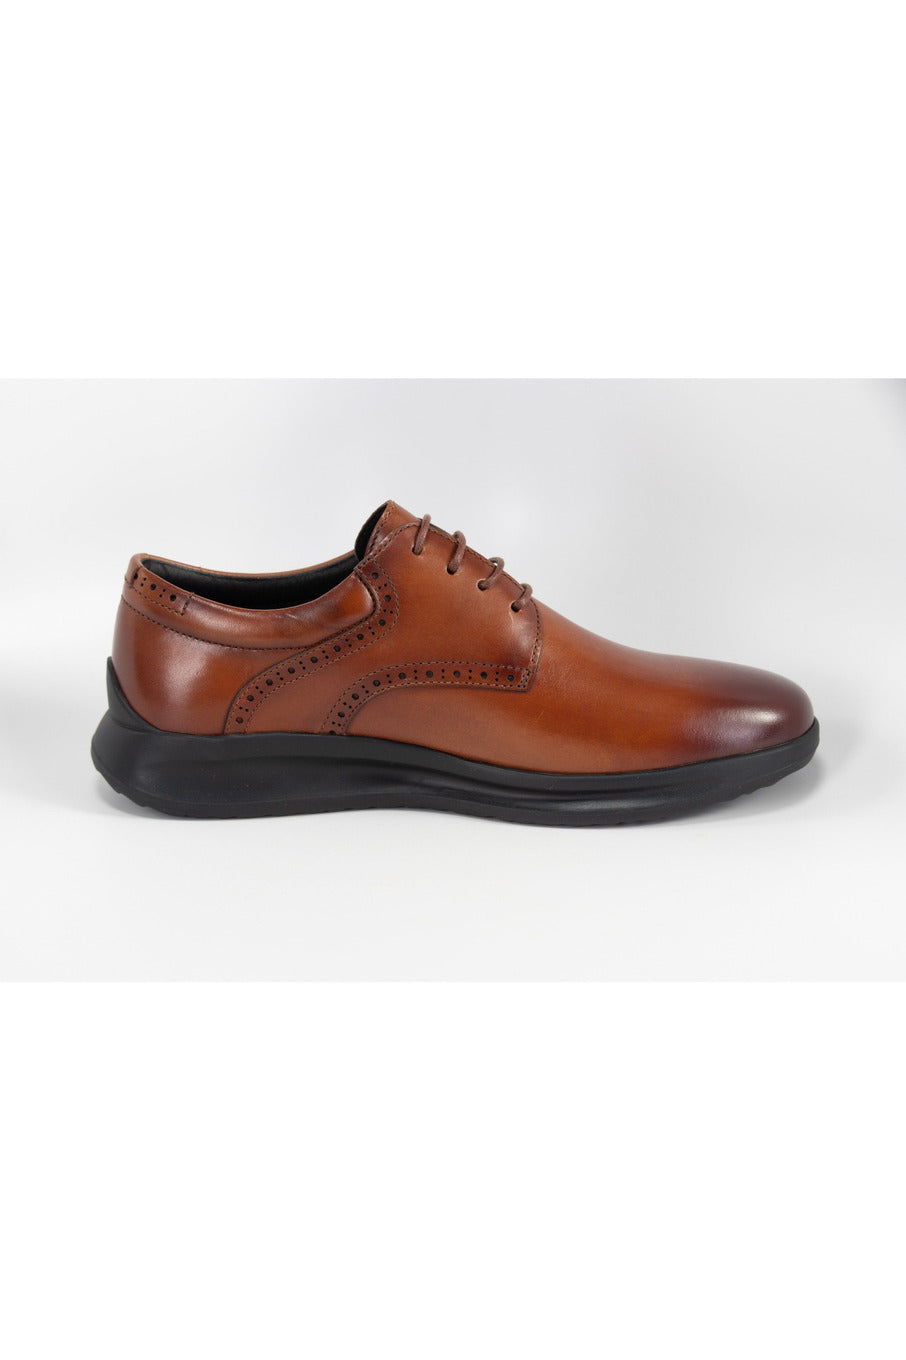 Robbins & Brooks Shoes - Robbins & Brooks Hayden Tan